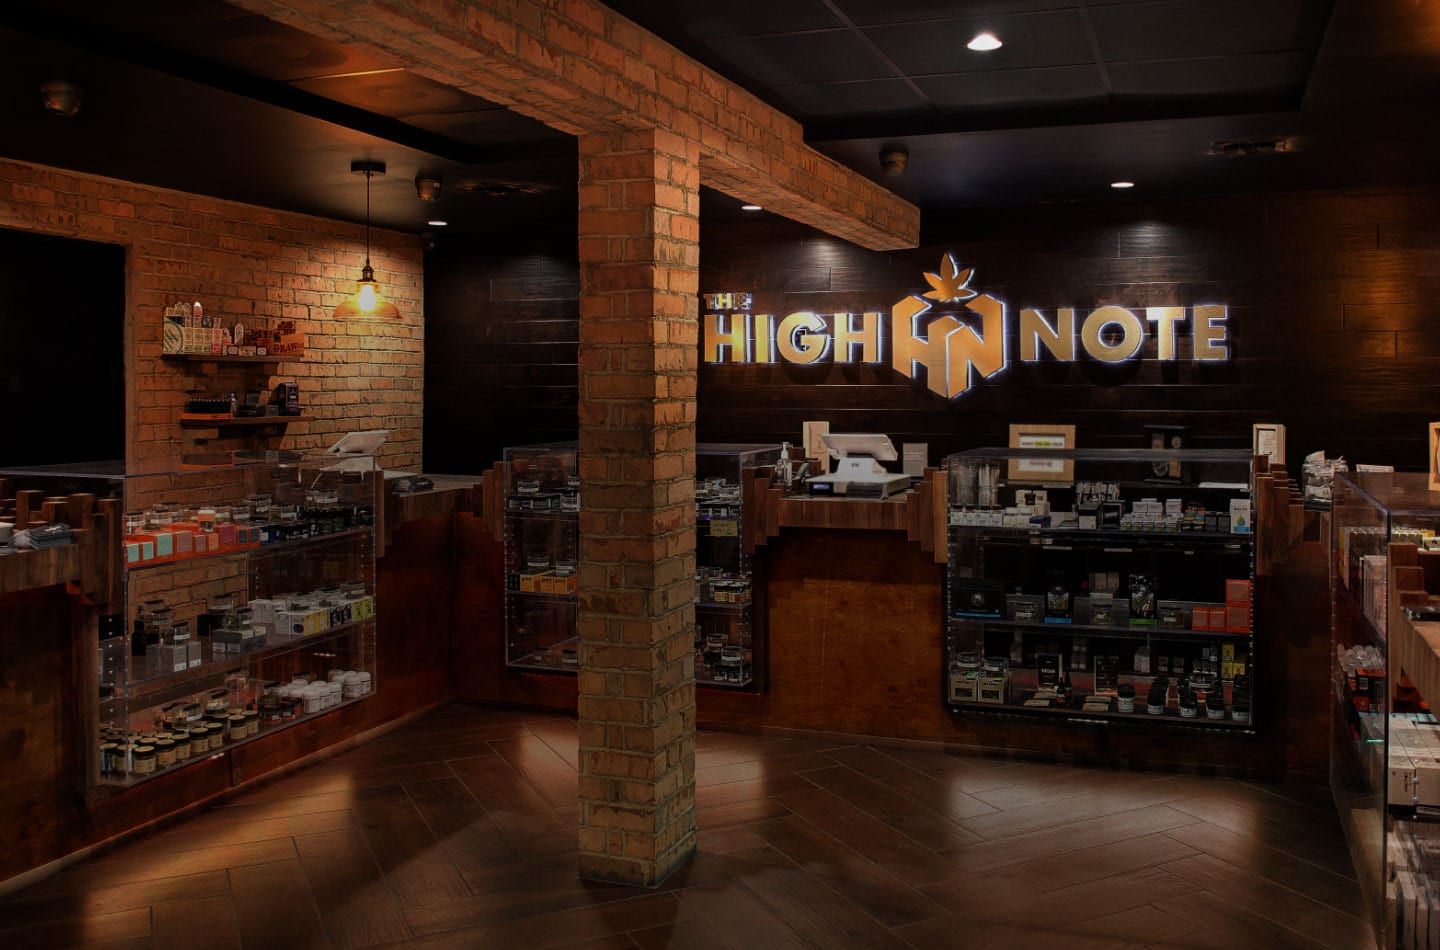 The High Note - Inside  View